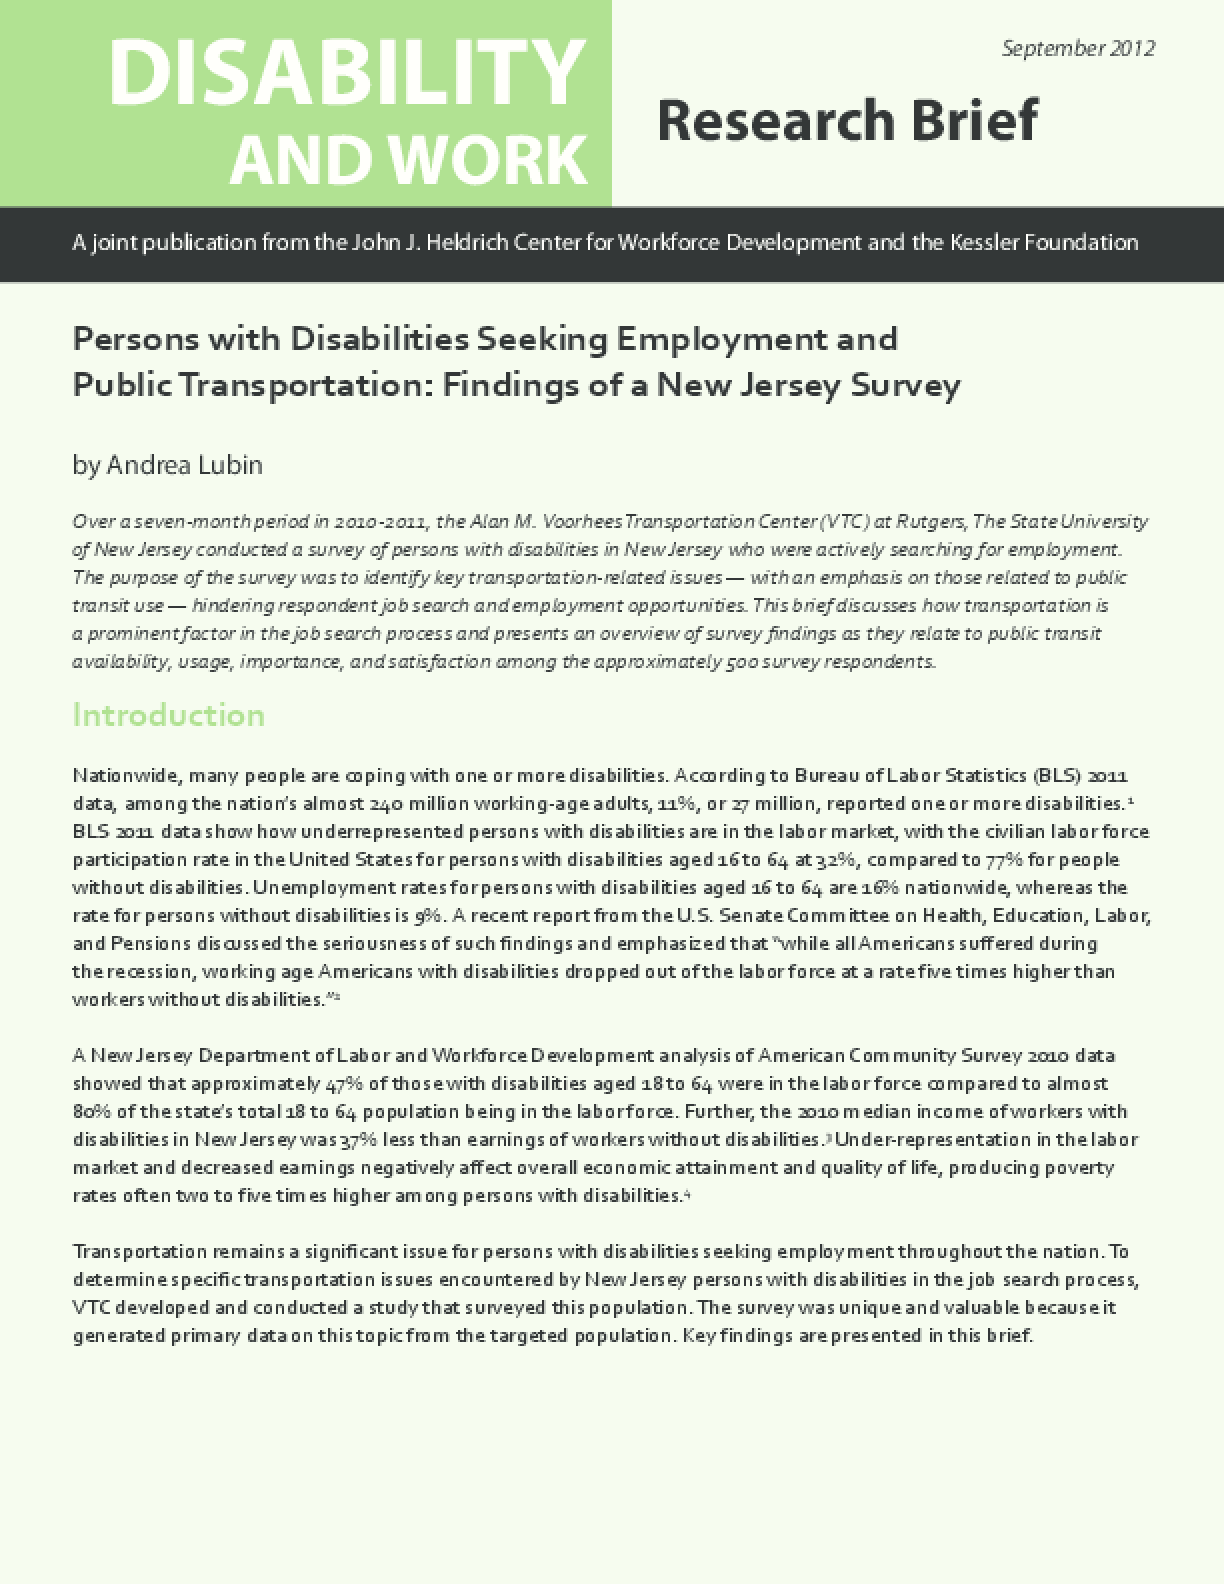 Persons with Disabilities Seeking Employment and Public Transportation: Findings from a New Jersey Survey